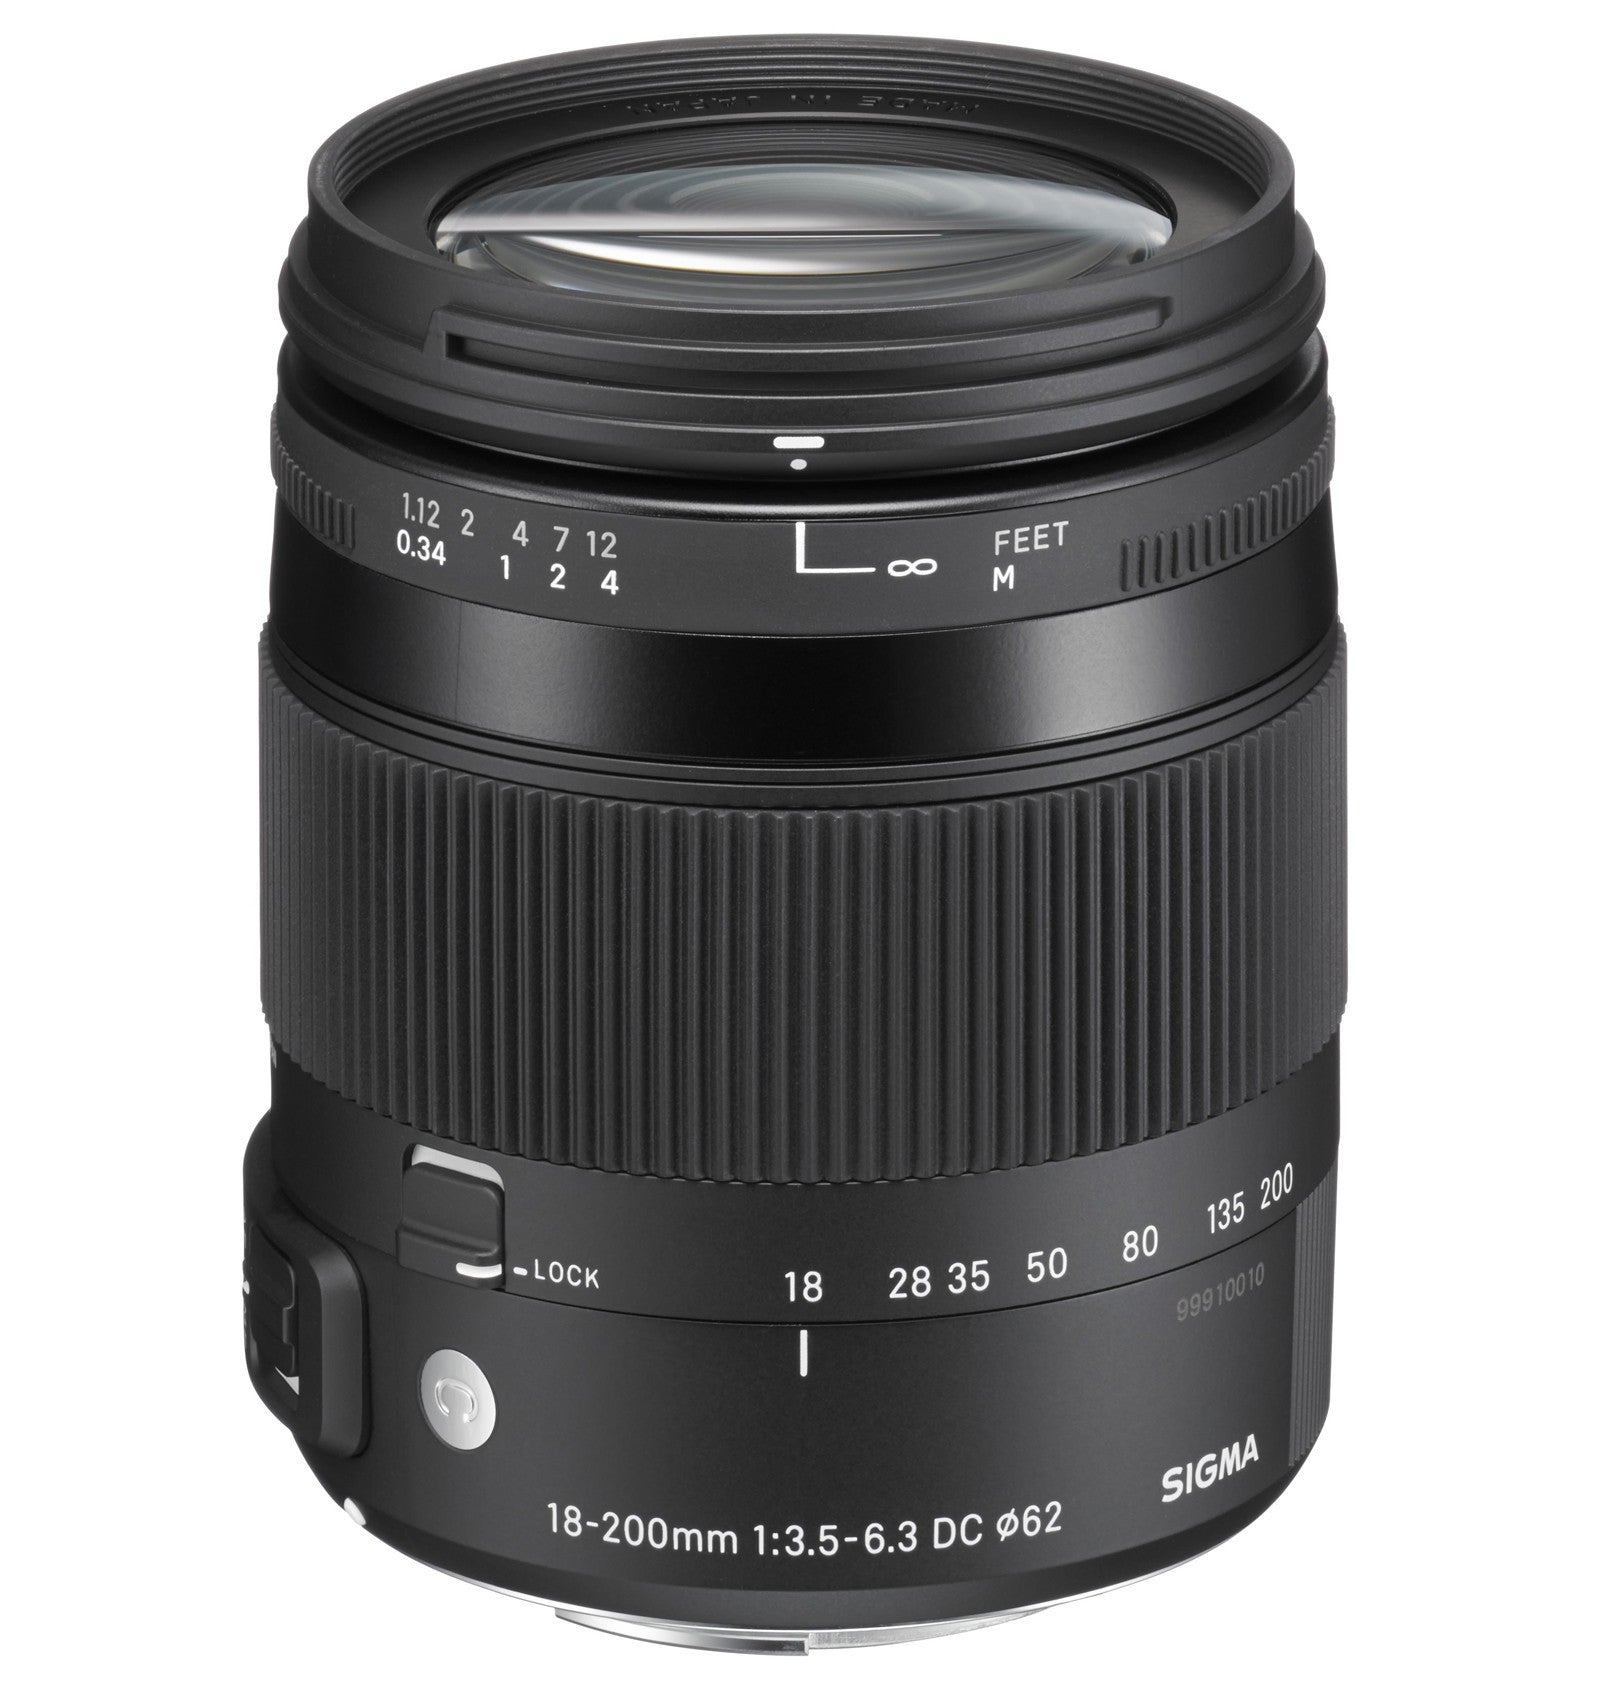 Sigma 18-200mm F3.5-6.3 CONTEMPORARY DC Macro OS HSM (Canon) - Photo-Video - Sigma - Helix Camera